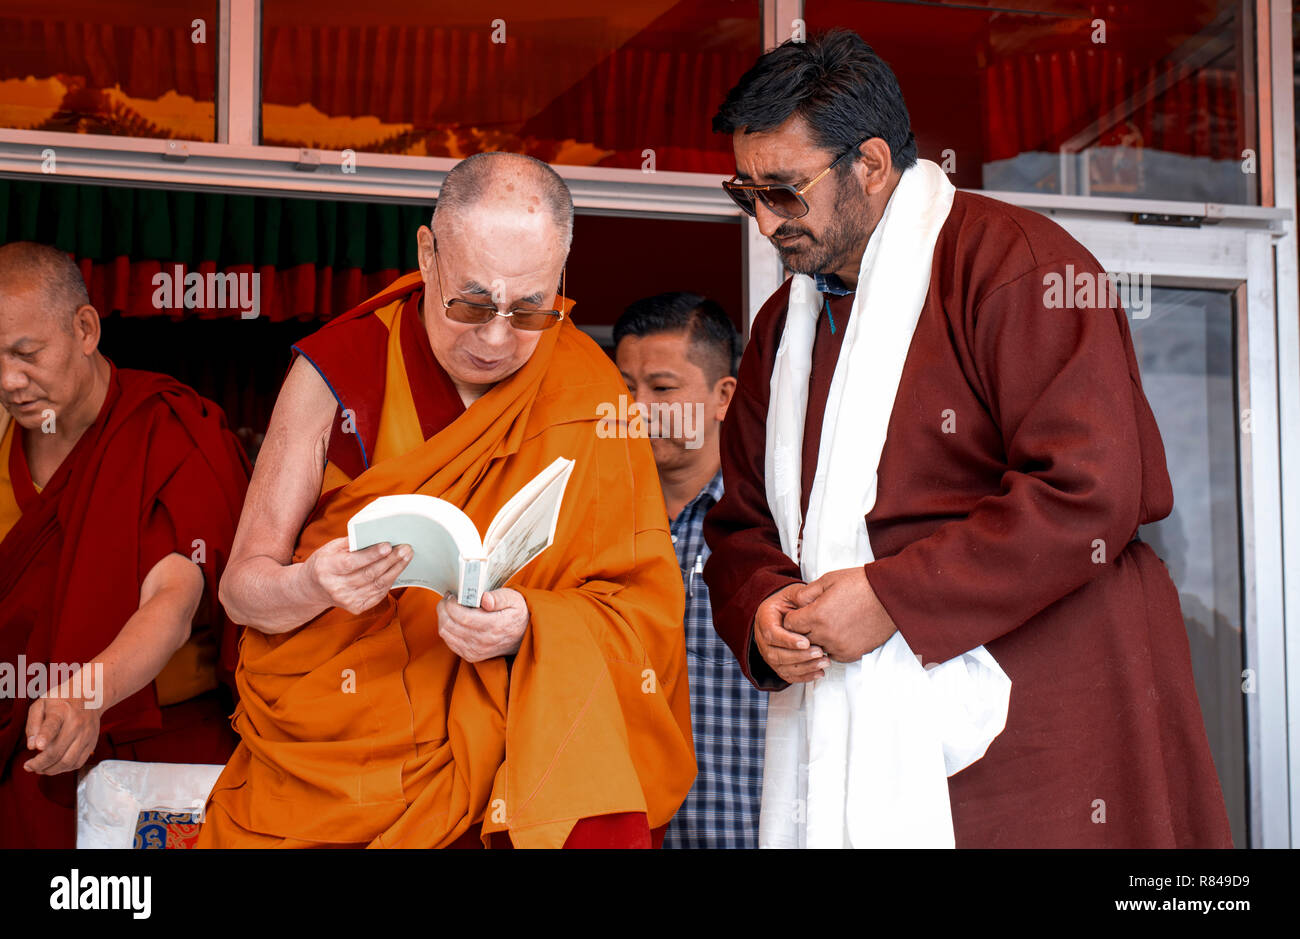 His Holiness the 14th Dalai Lama during his visit to the Spring Dales Public School in Mulbekh, Ladakh, Jammu and Kashmir, India, July 26, 2018. (CTK  - Stock Image